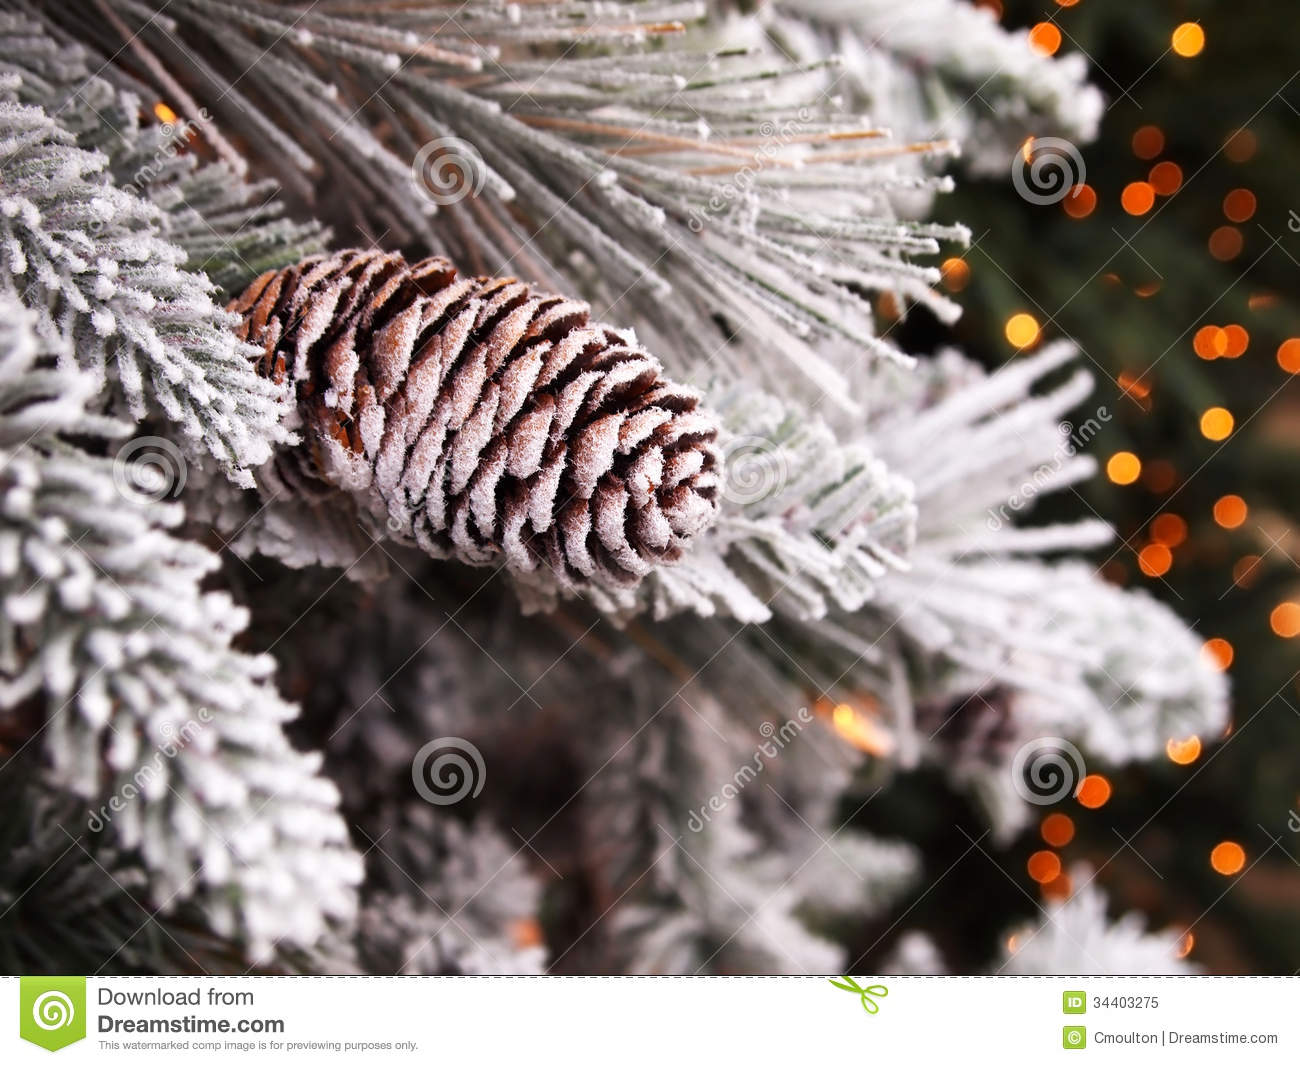 Snowy Pinecone Christmas Tree Stock Image - Image: 34403275